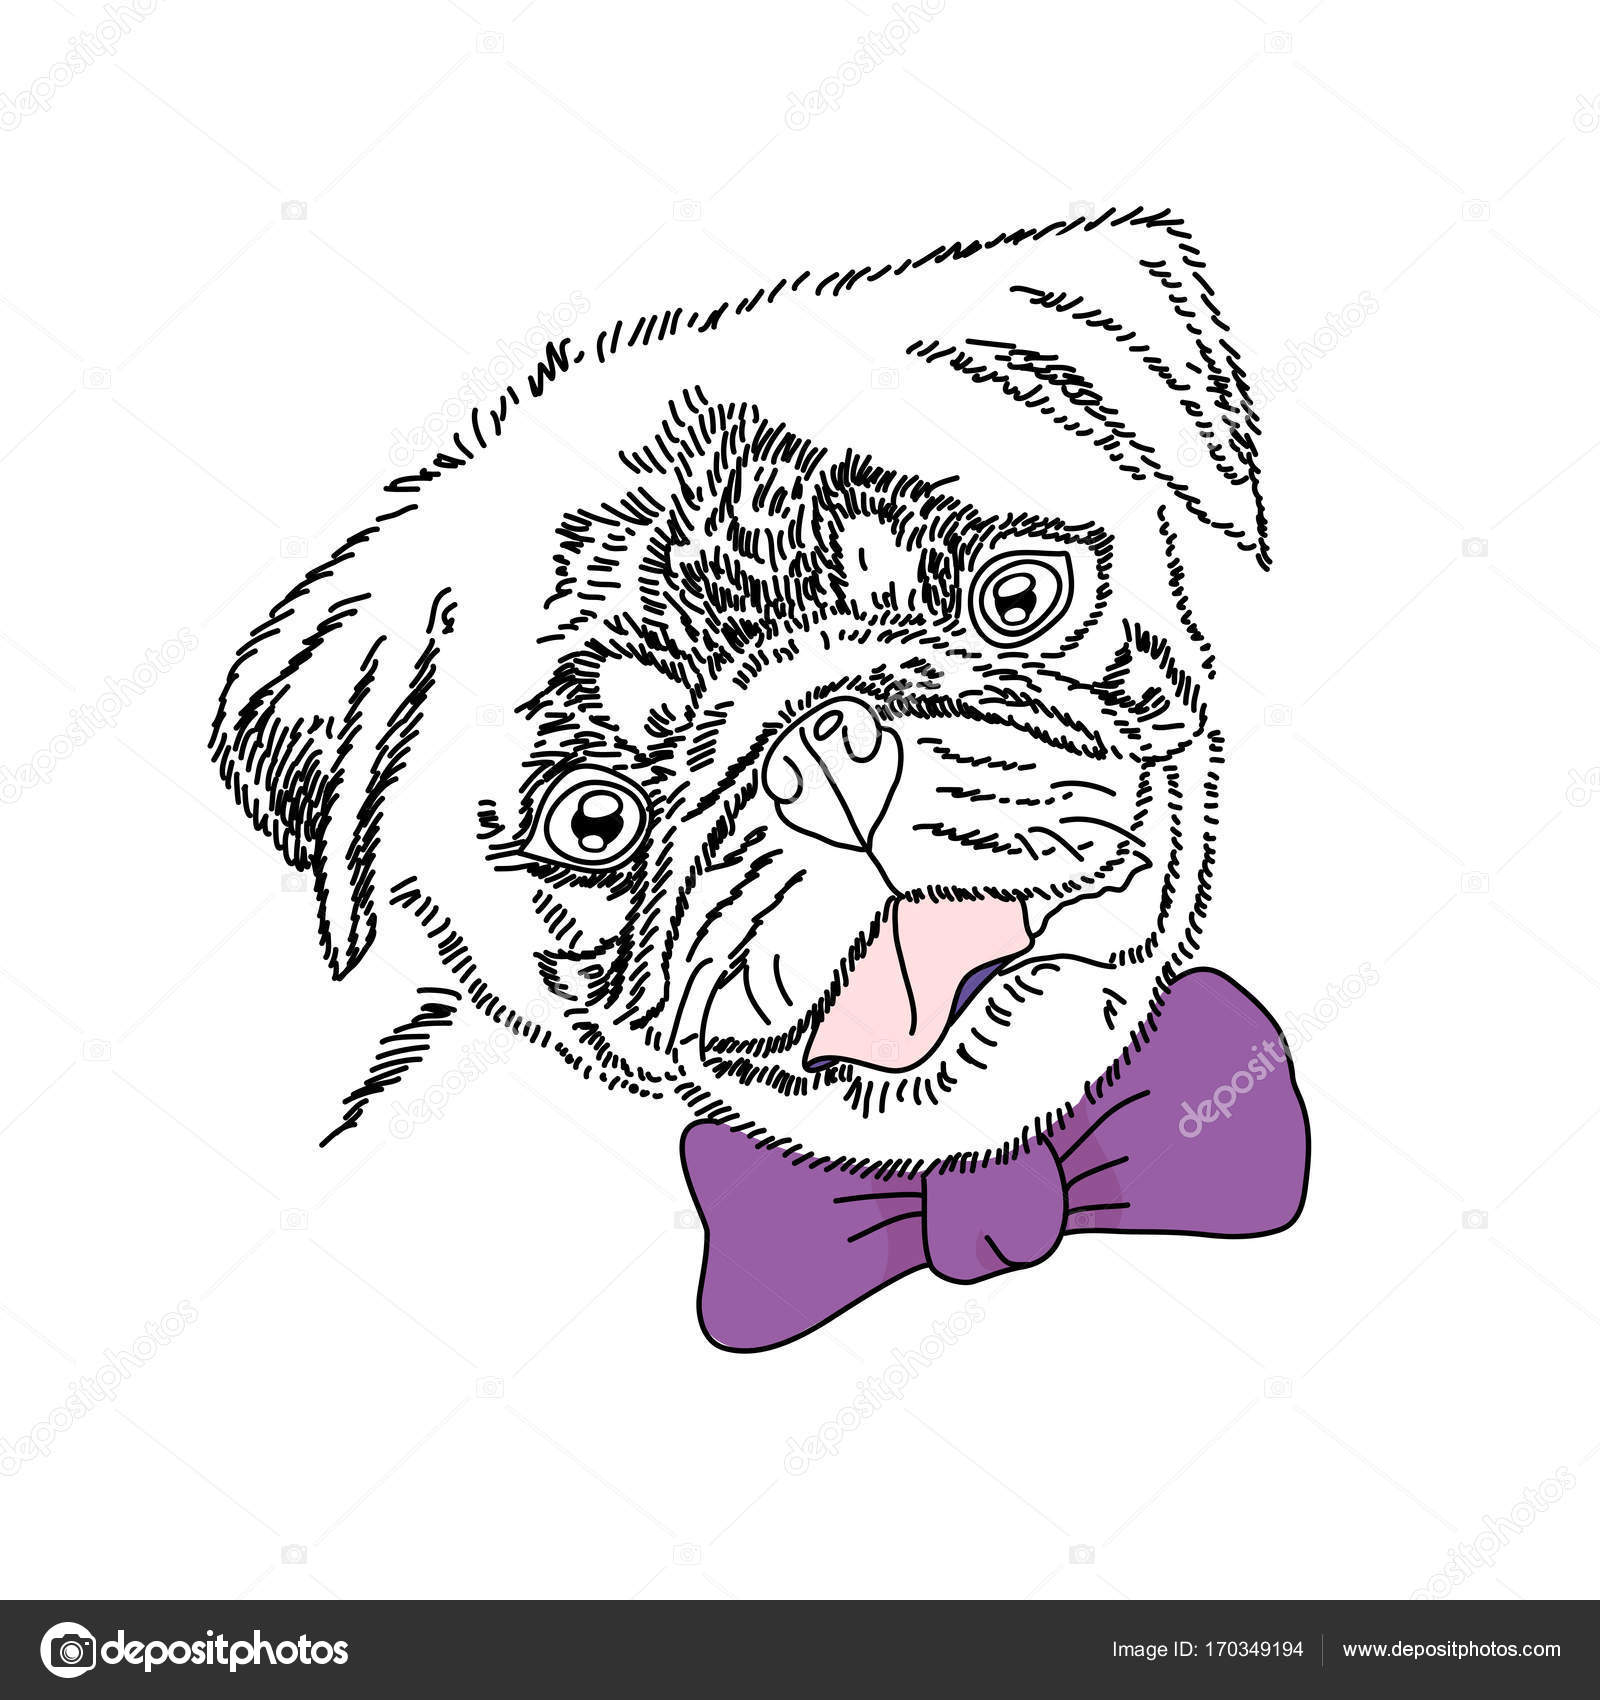 Popular Pug Bow Adorable Dog - depositphotos_170349194-stock-illustration-dog-with-violet-bow-cute  Perfect Image Reference_51856  .jpg